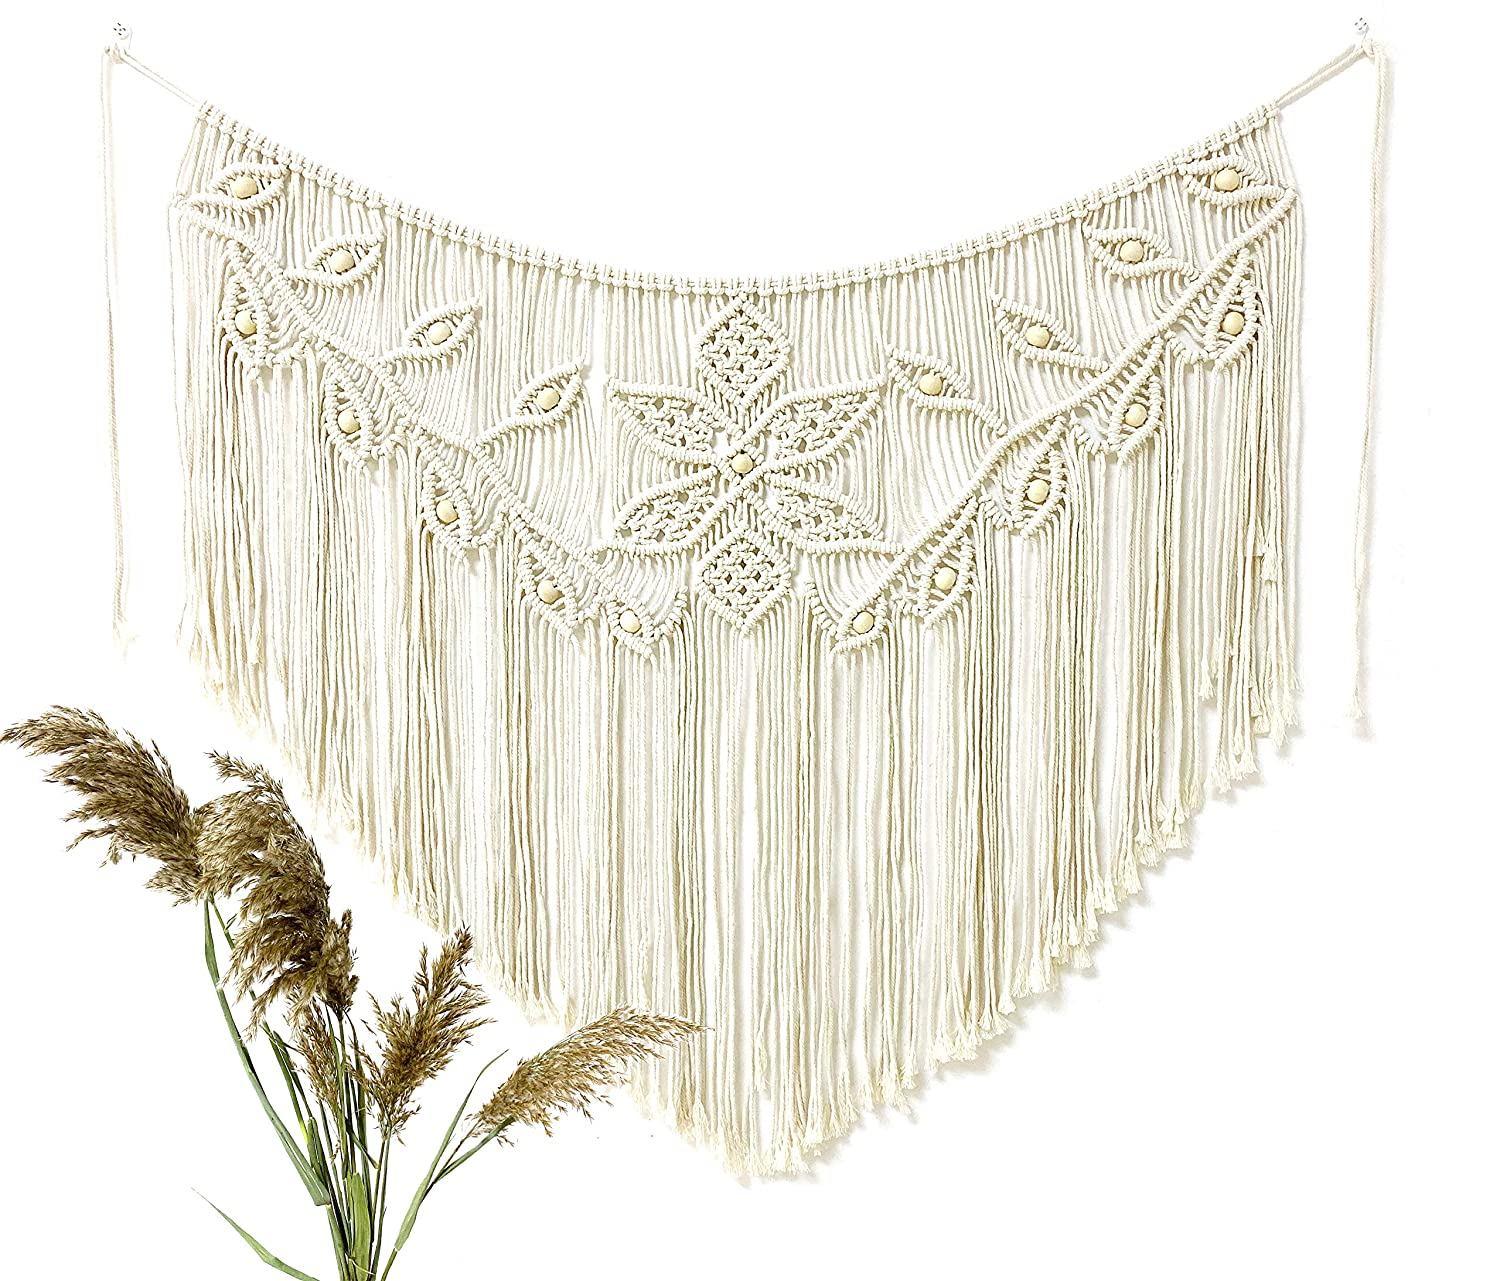 Youngeast Home Decor Leaf Shape Macrame Wall Hanging Woven Tapestry Bedroom Curtain Fringe Garland Banner Living Room Wall Decor Beige 39X31 inches